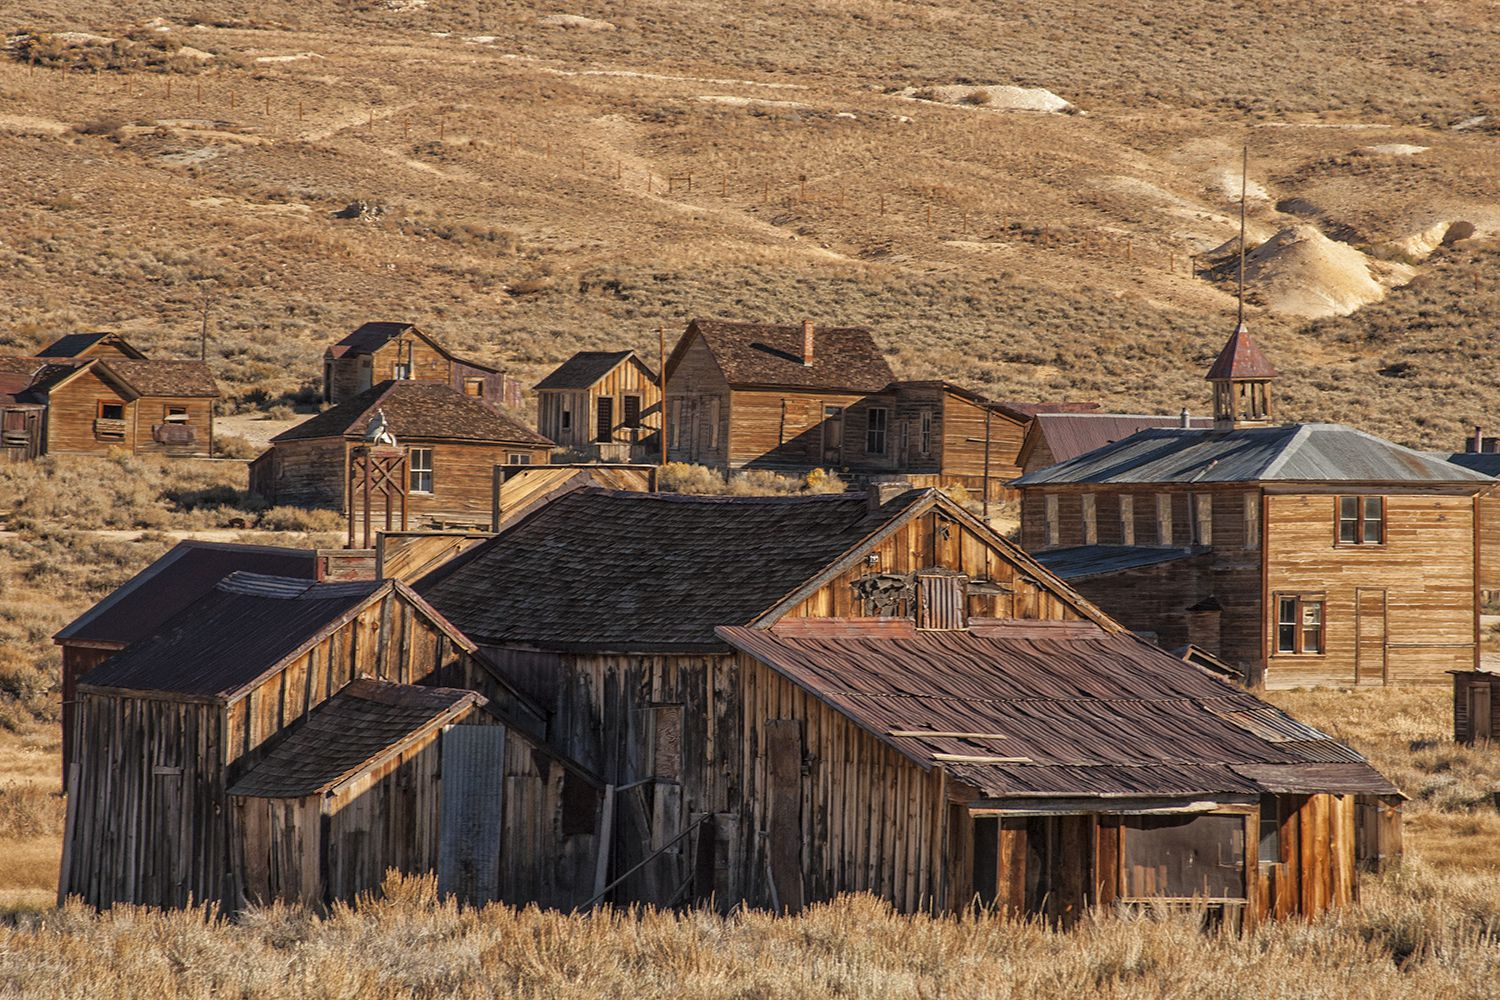 Best Used Family Car >> Bodie, California: The Best Ghost Town in the West